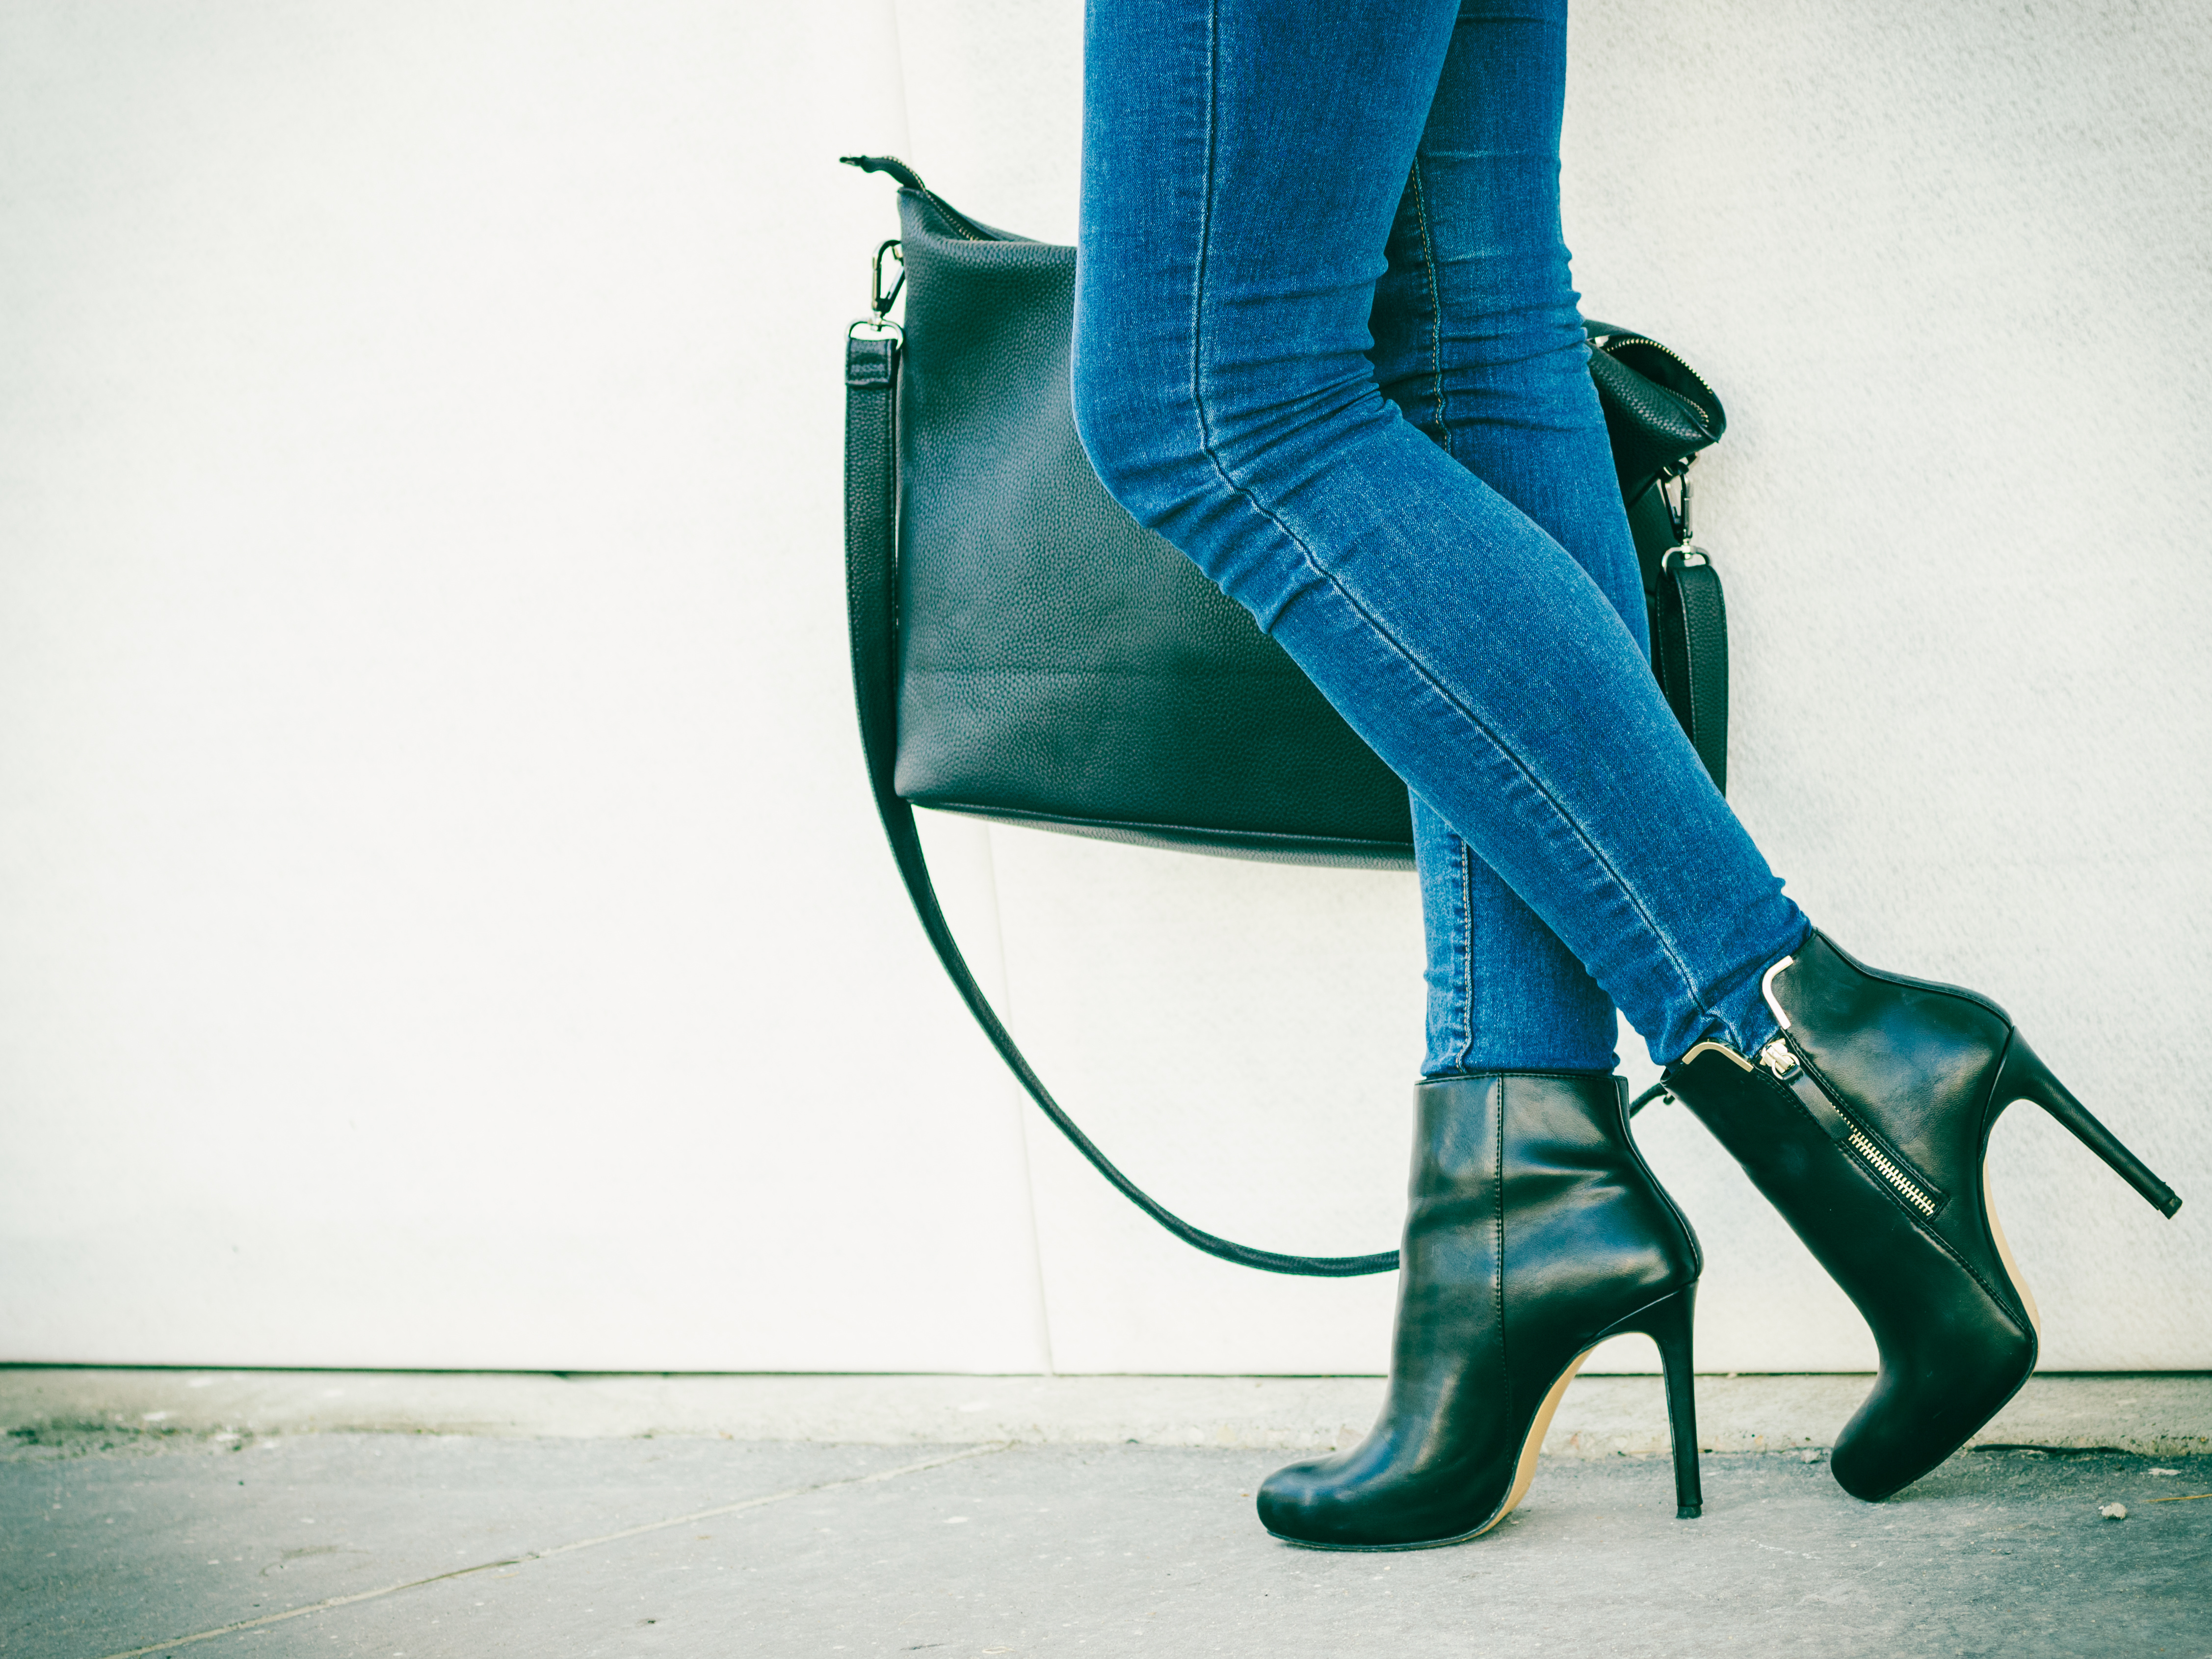 8096c11e3cf22 Autumn fashion outfit. Fashionable woman long legs in denim pants black  stylish high heels shoes